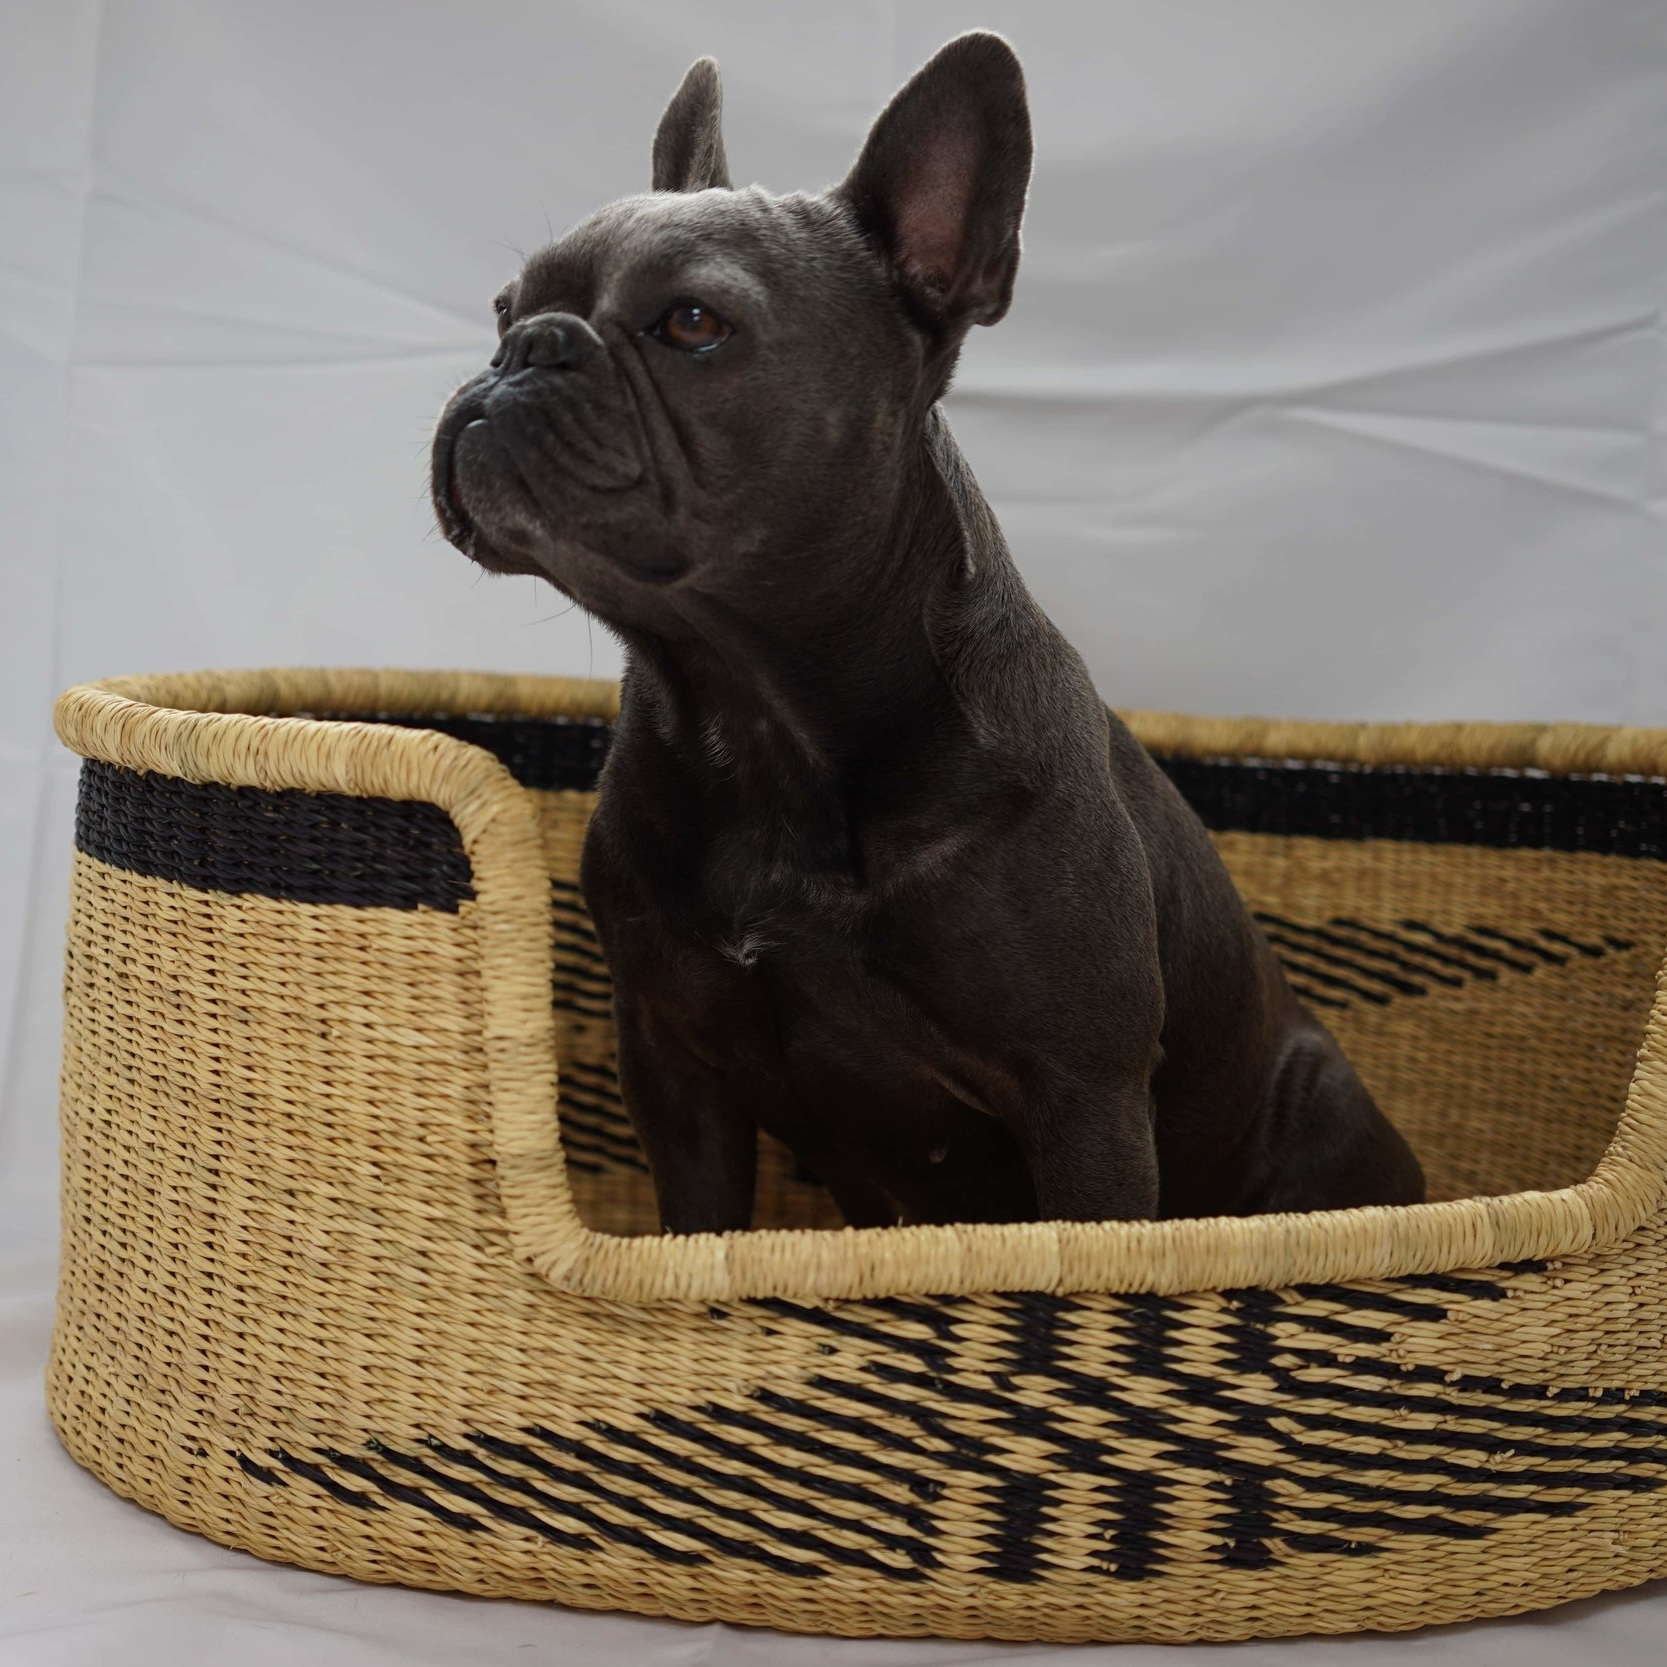 MWAMBO DOG BASKET - LARGESize: 70cm x 50cm x 28cm Approx - £140